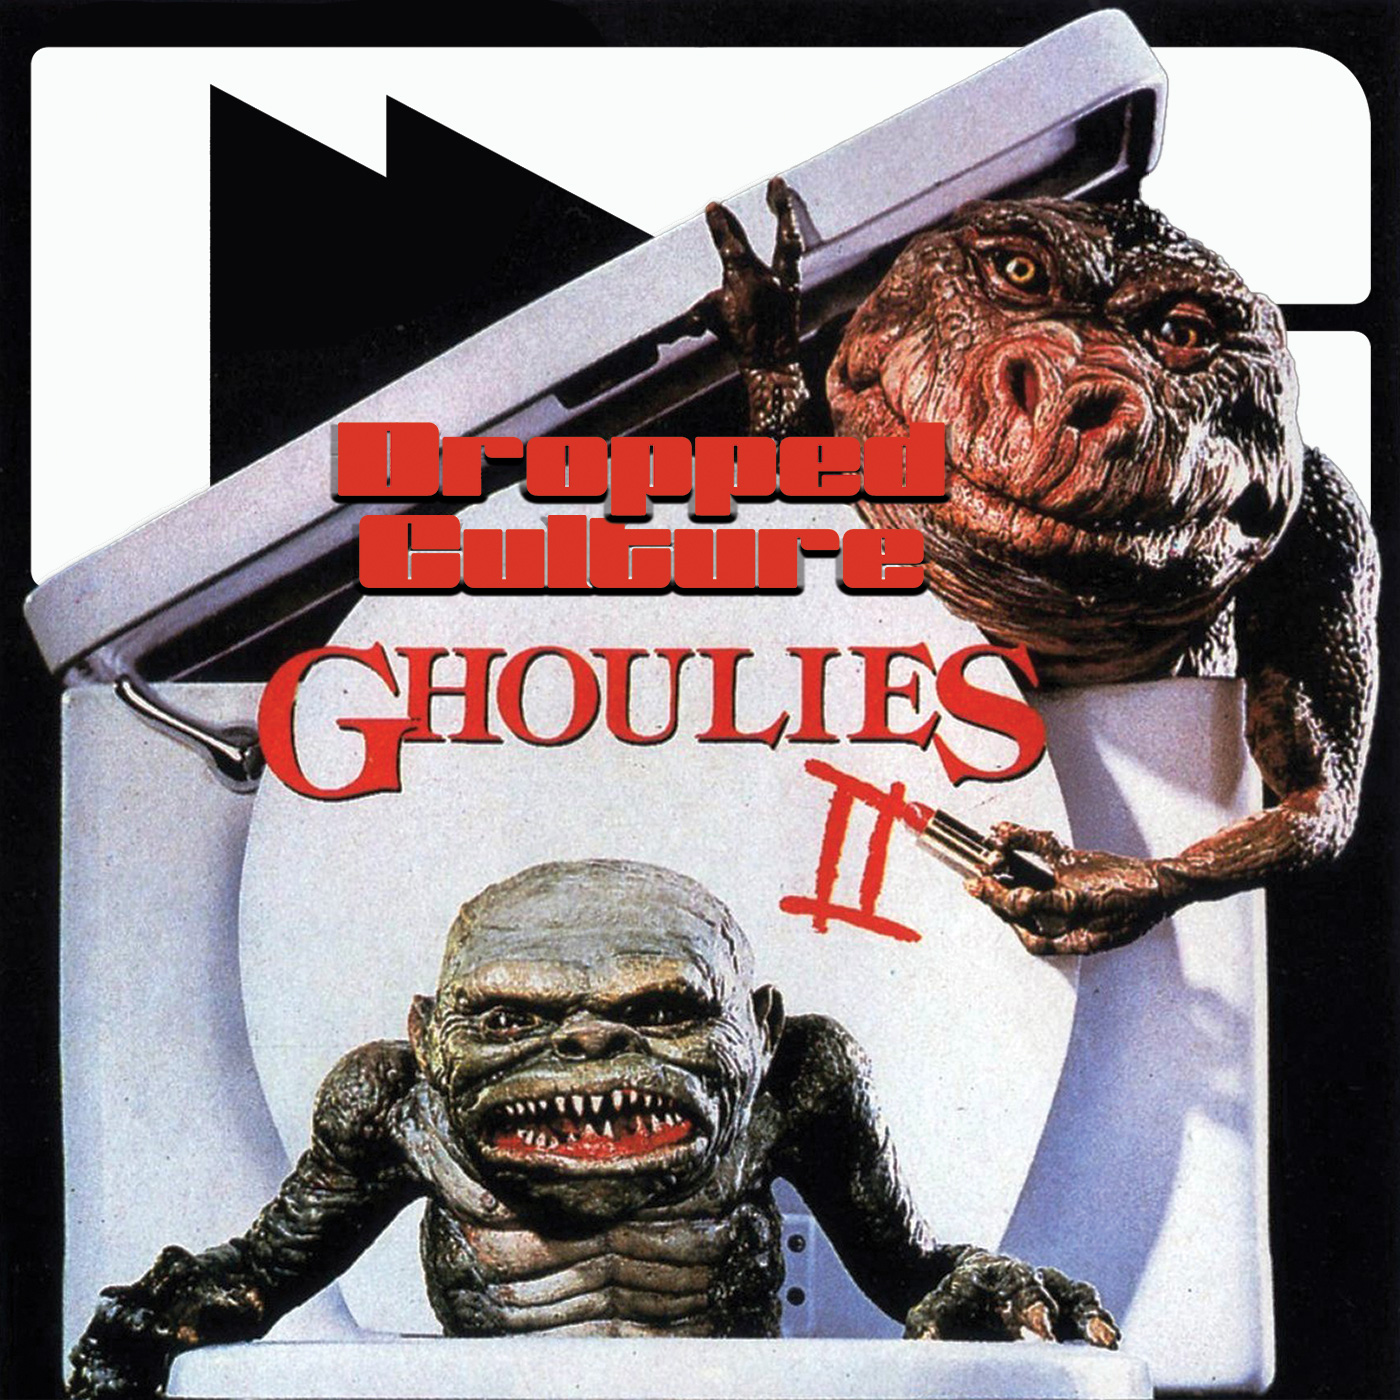 Dropped Culture Ghoulies 2